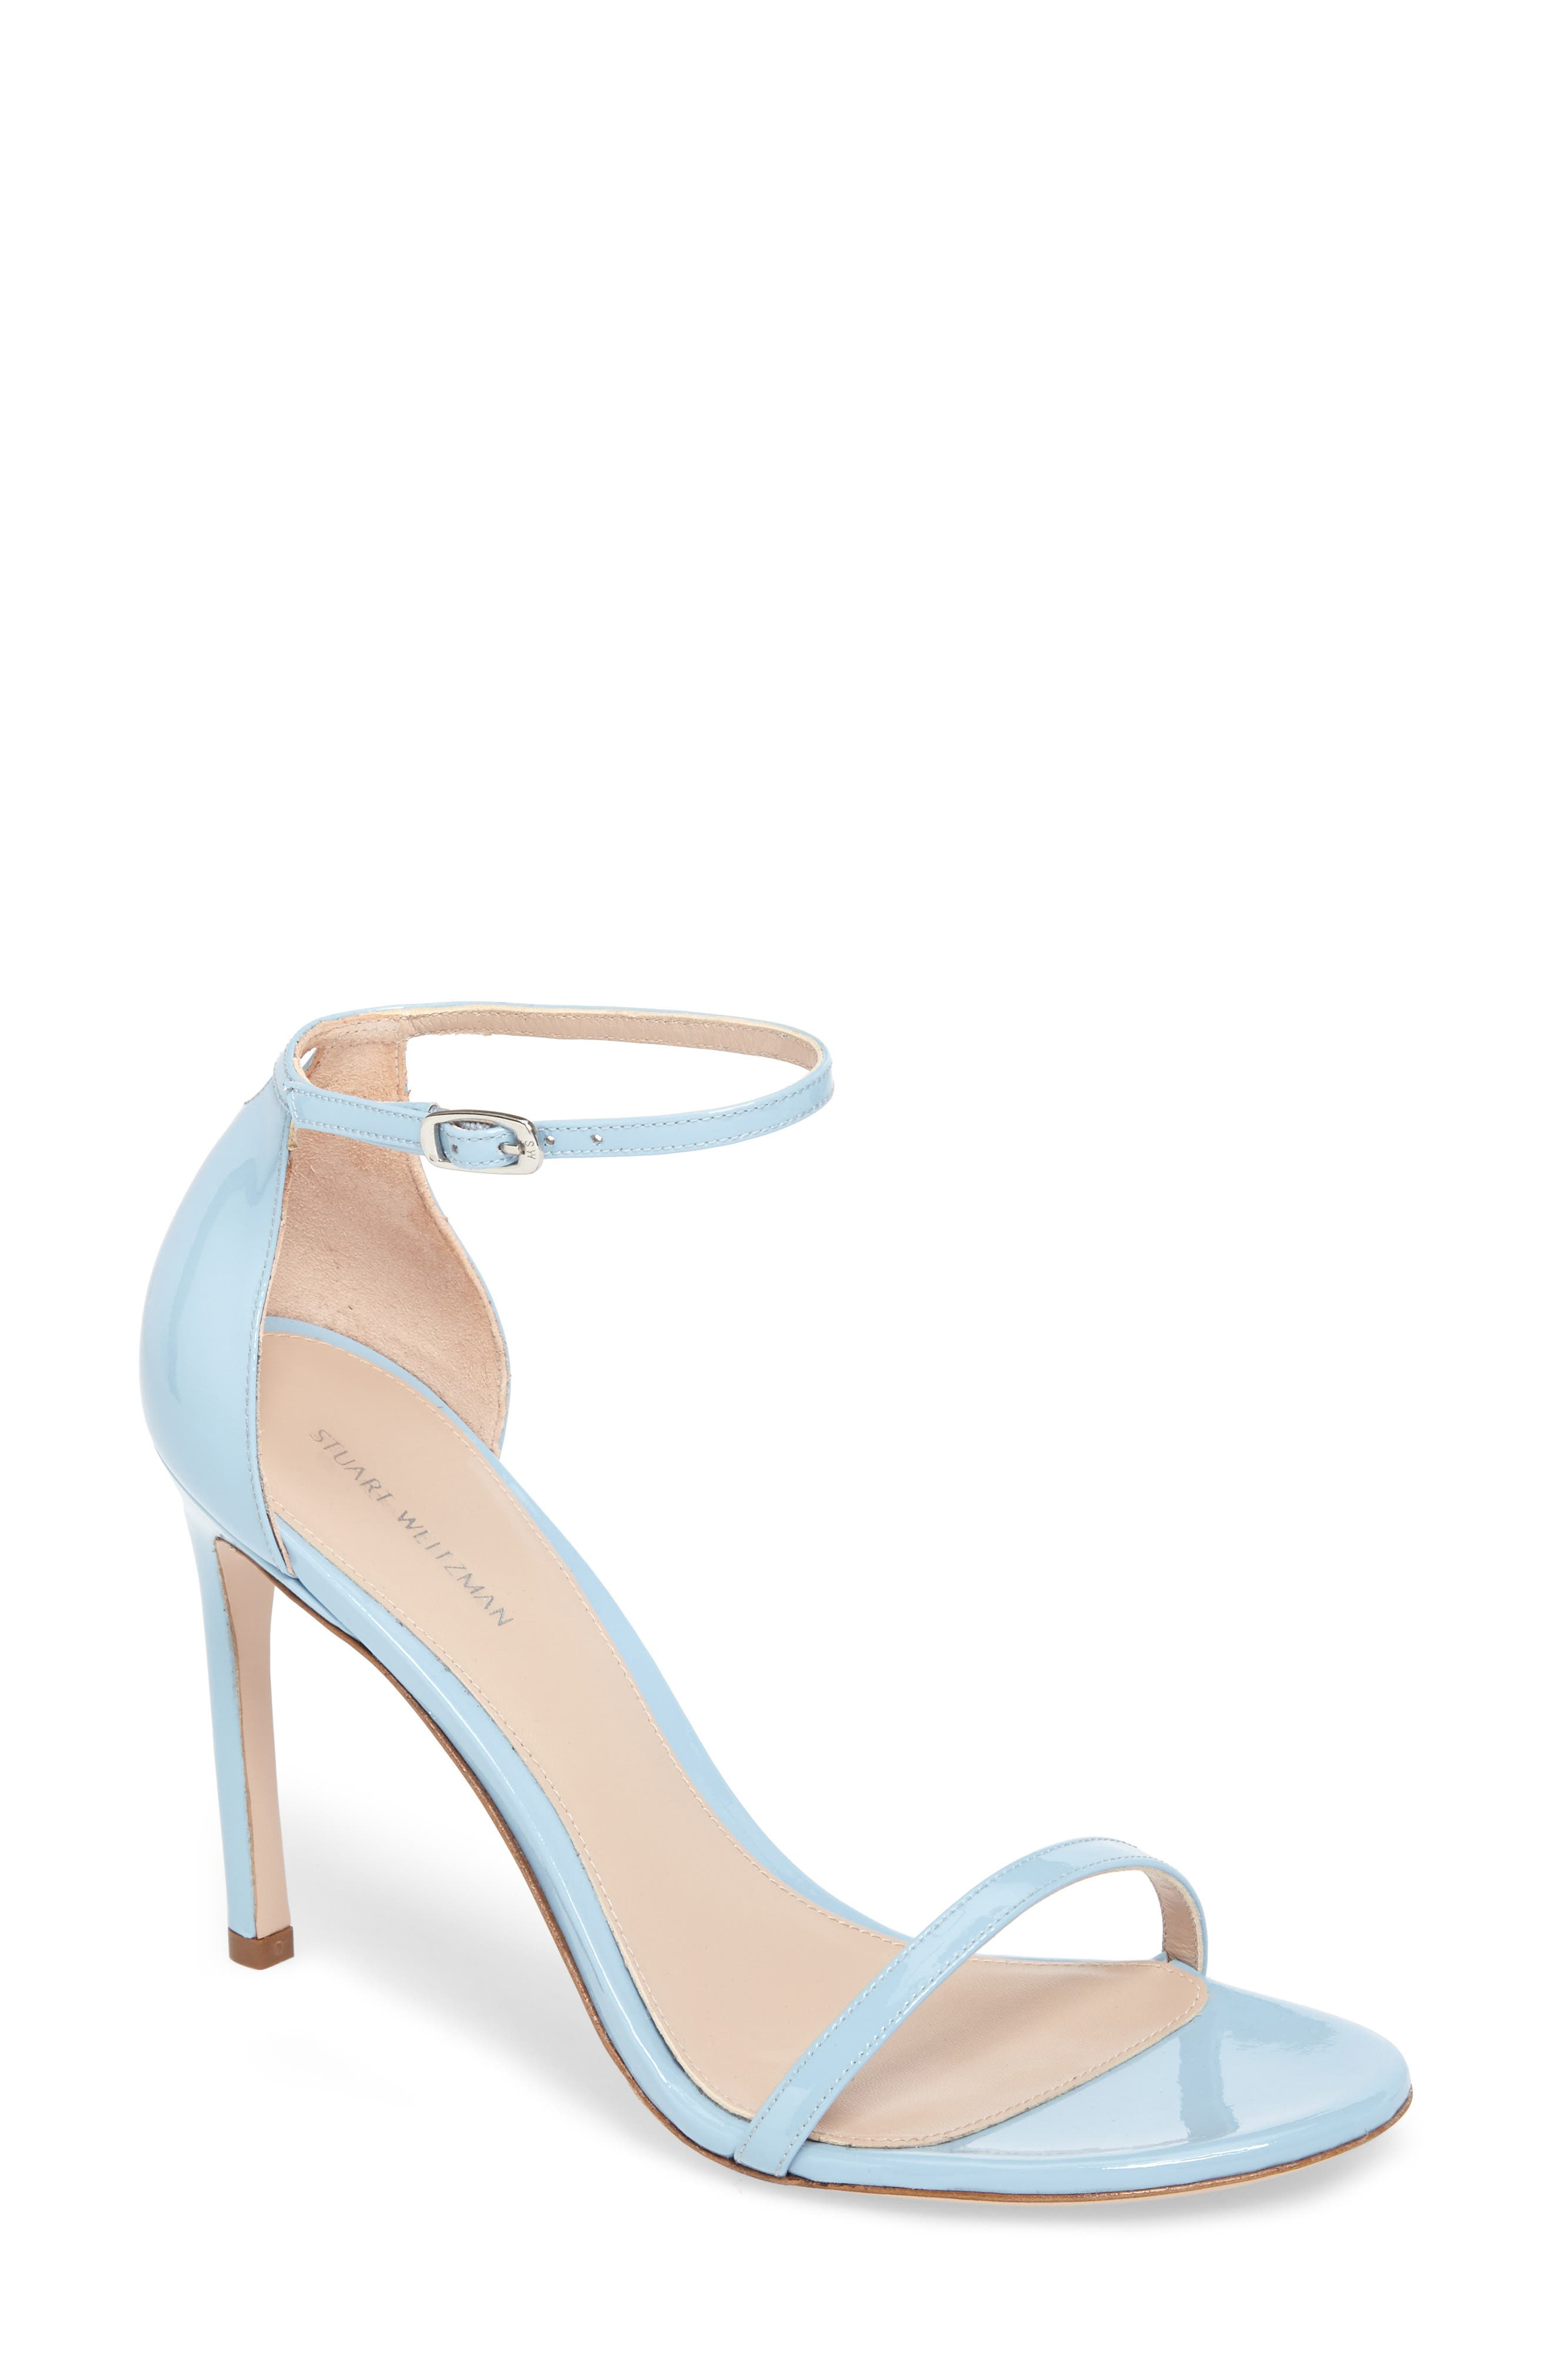 Nudistsong Ankle Strap Sandal,                             Main thumbnail 9, color,